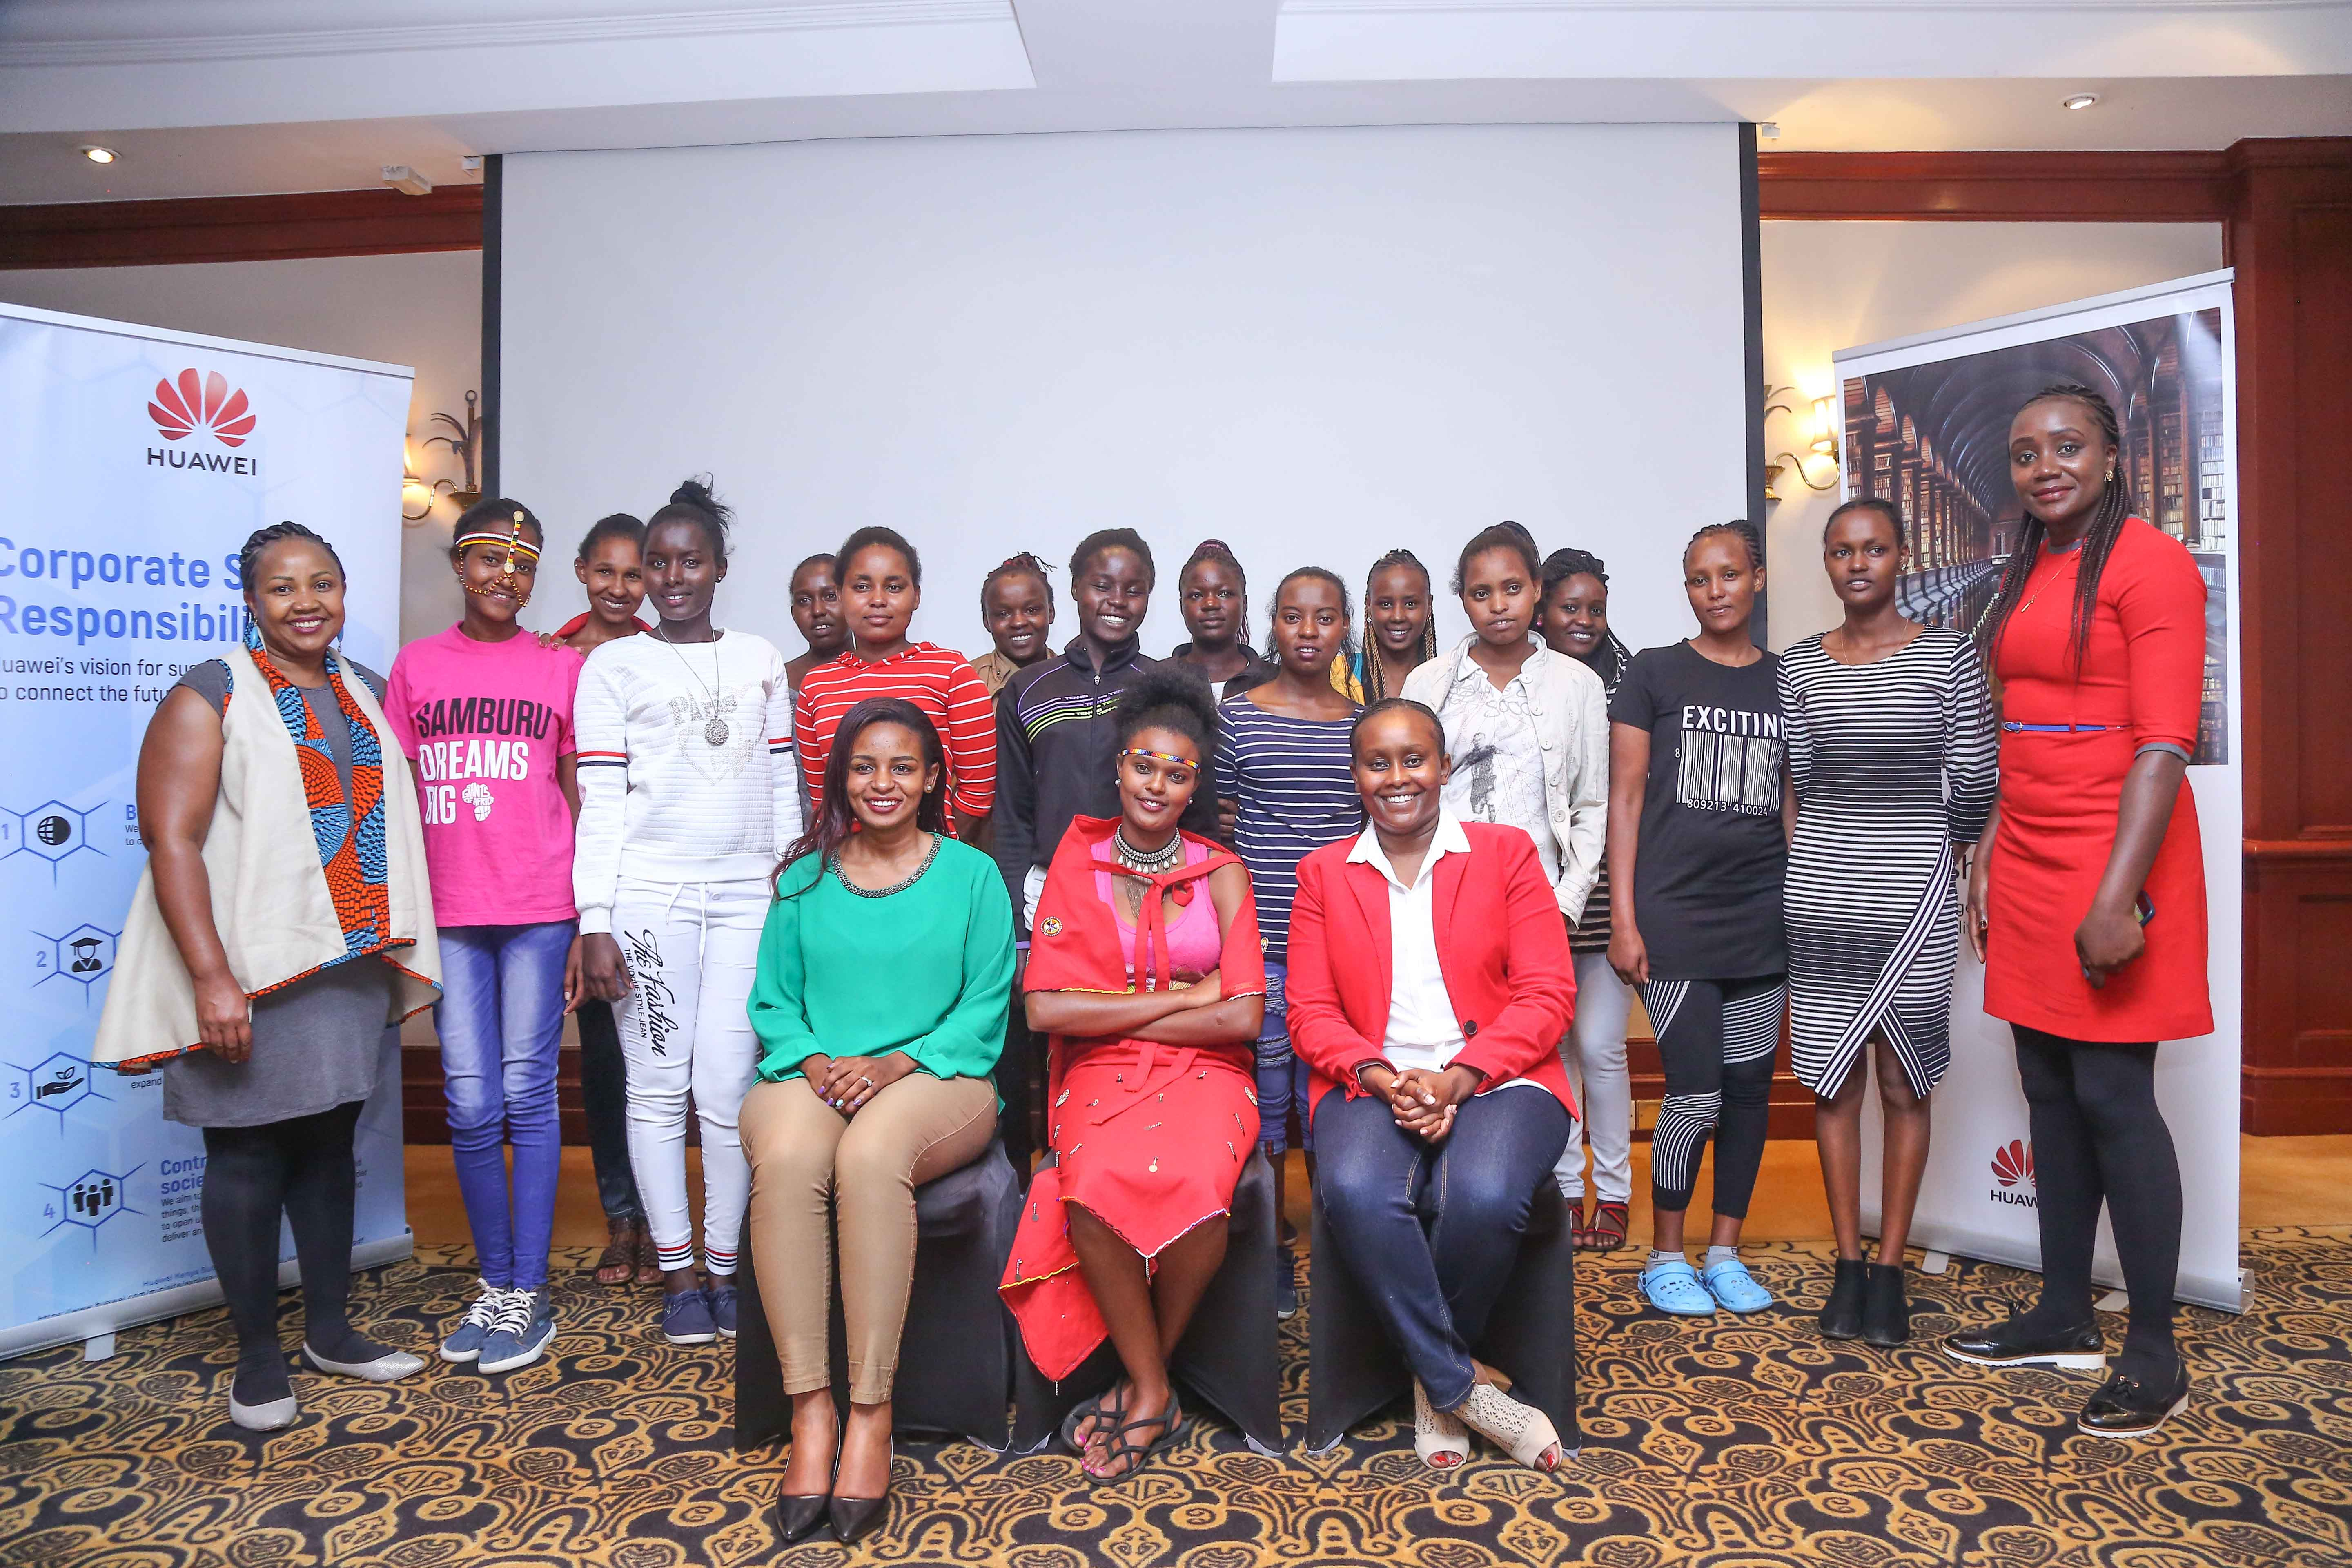 15 INSPIRATIONAL GIRLS RESCUED BY SAMBURU GIRLS FOUNDATION RECEIVE MENTORING FROM HUAWEI AND SAFARICOM TO HELP THEM PREPARE FOR COLLEGE